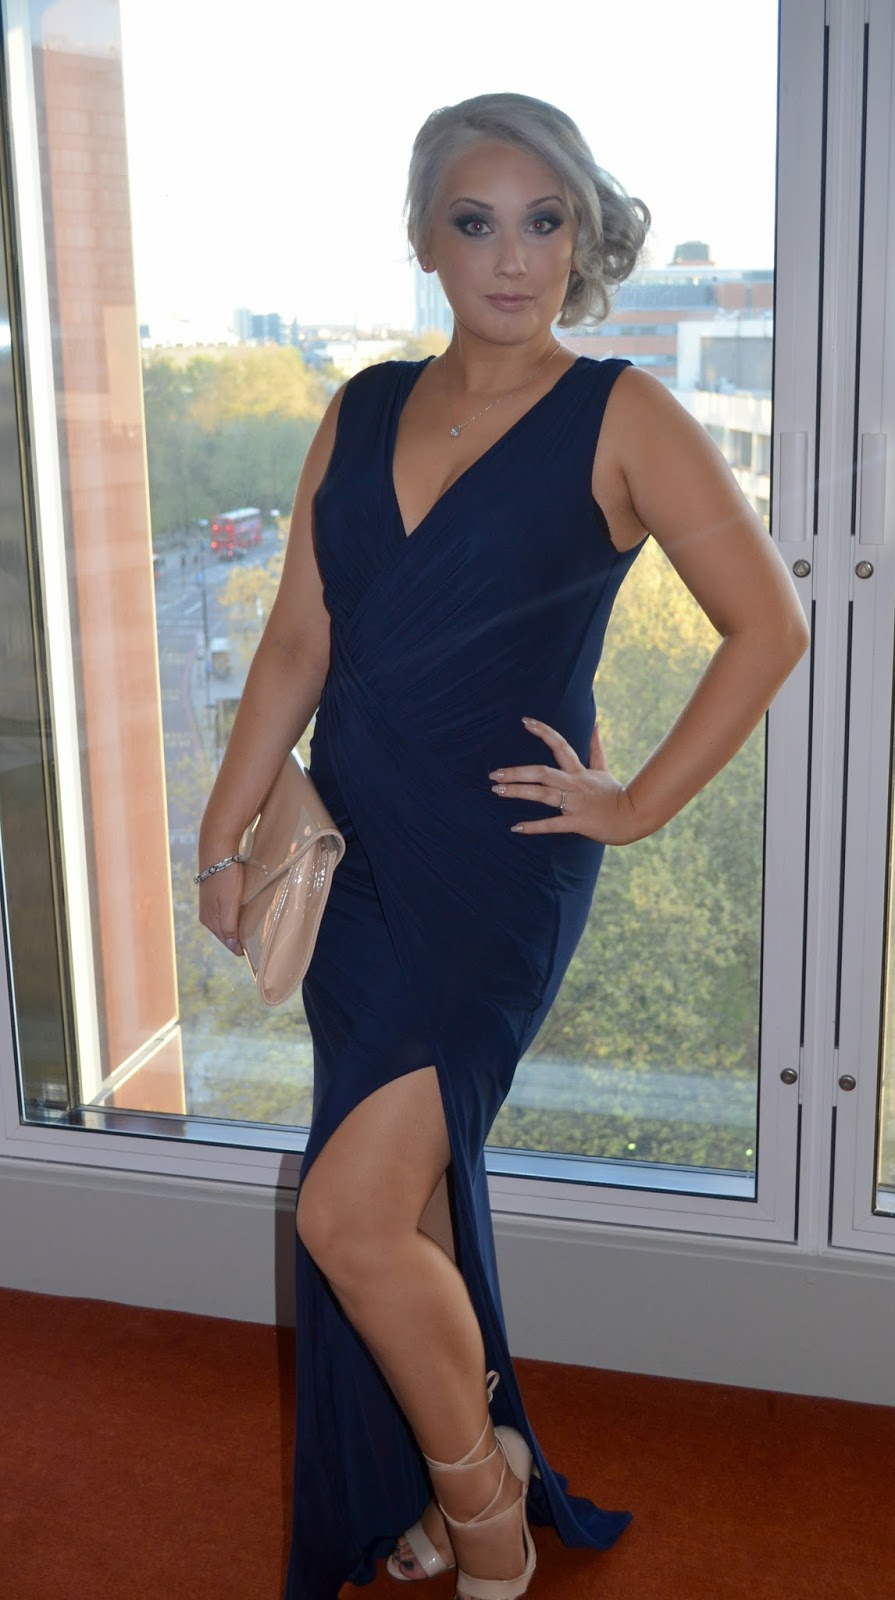 UK Blog Awards - Formal - Outfit - OOTD - Outfit of the day - floor length dress - styling - nude - navy dress -  shoes - heeled sandals - clutch bag - budget - cheap - jewellery - stud earrings - diamonte earrings